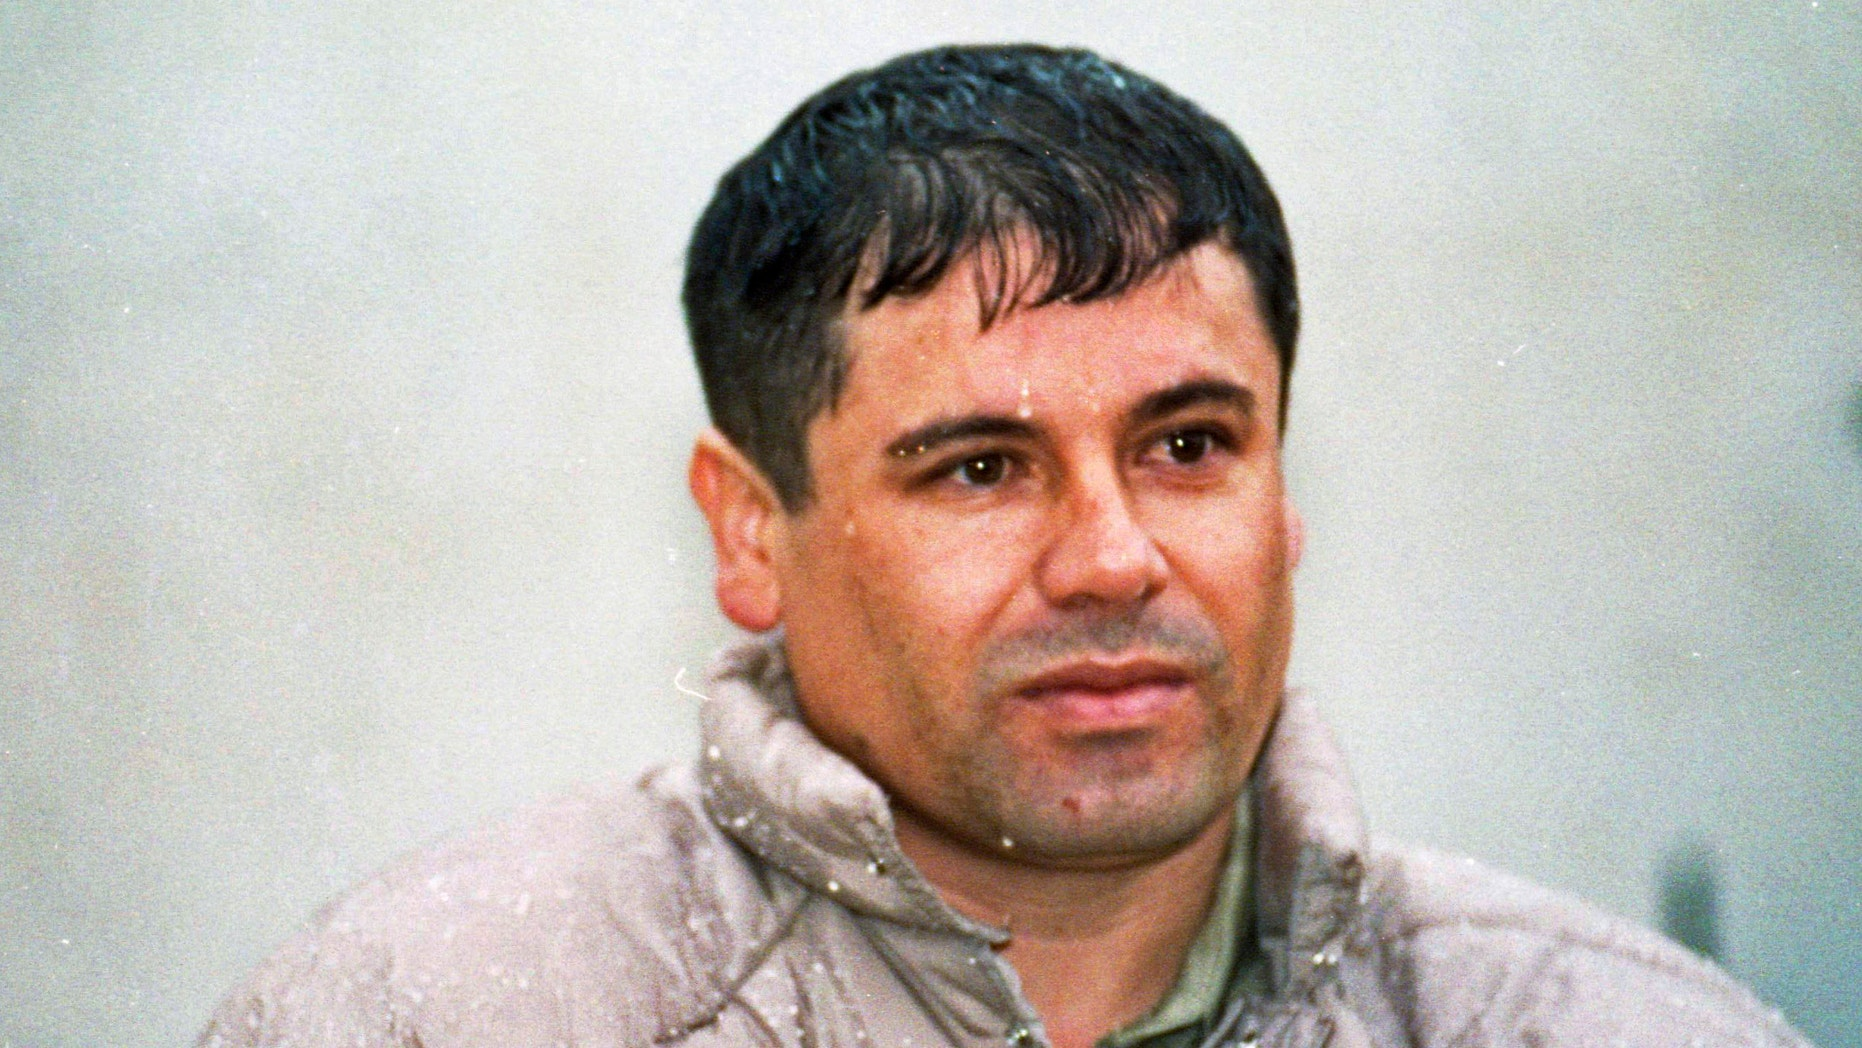 """In this June 10, 1993 file photo, Joaquin Guzman Loera, alias """"El Chapo"""" Guzman, is shown to the media after his arrest at the high security prison of Almoloya de Juarez, on the outskirts of Mexico City. (AP Photo/Damian Dovarganes, File)"""